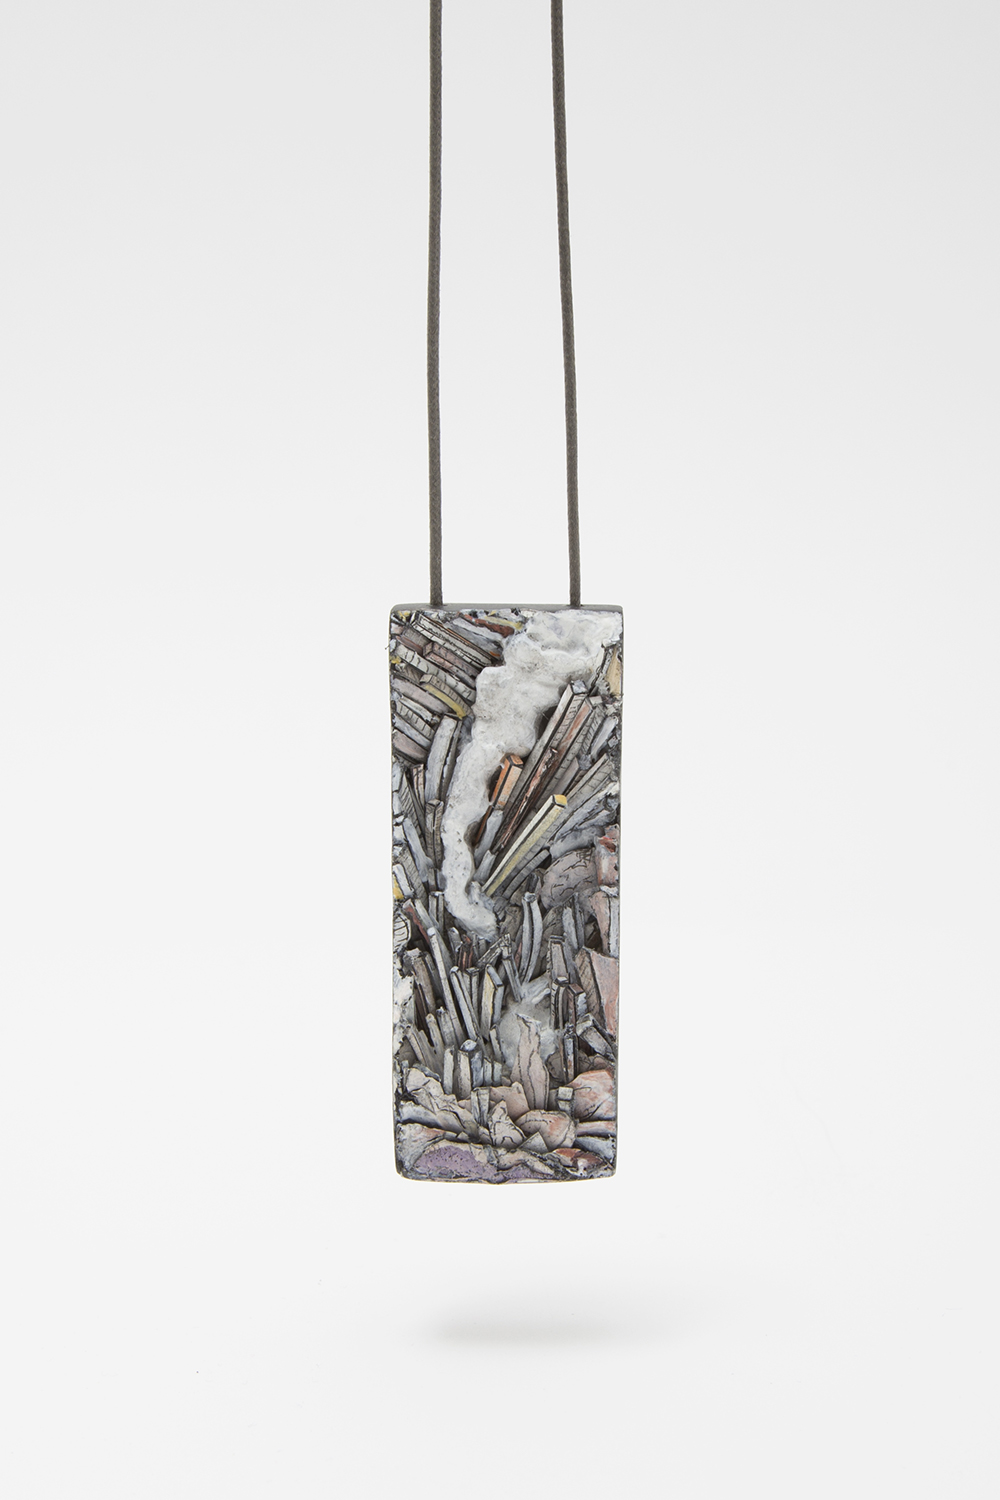 Untitled | Pendant | 2020 | Paper, paint, silver, wood, graphite, cotton string | 73X632X22mm